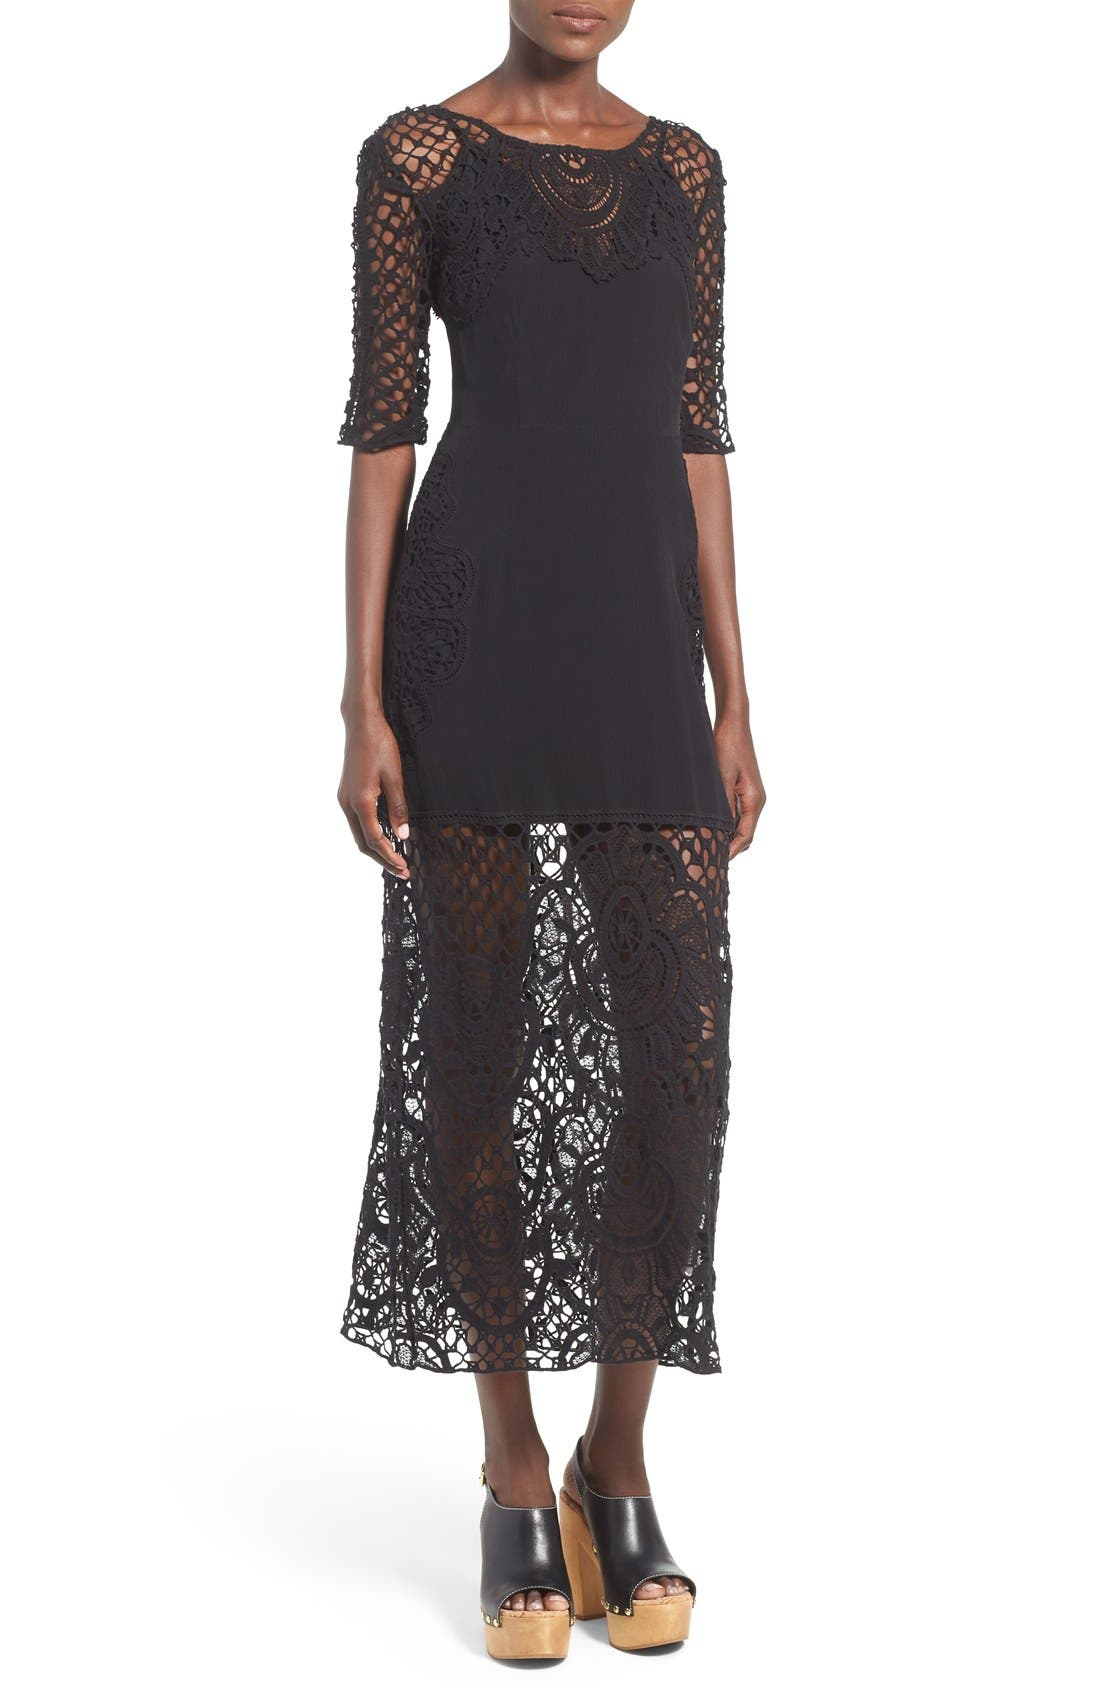 Main Image - For Love & Lemons 'Gracey' Illusion Lace Midi Dress